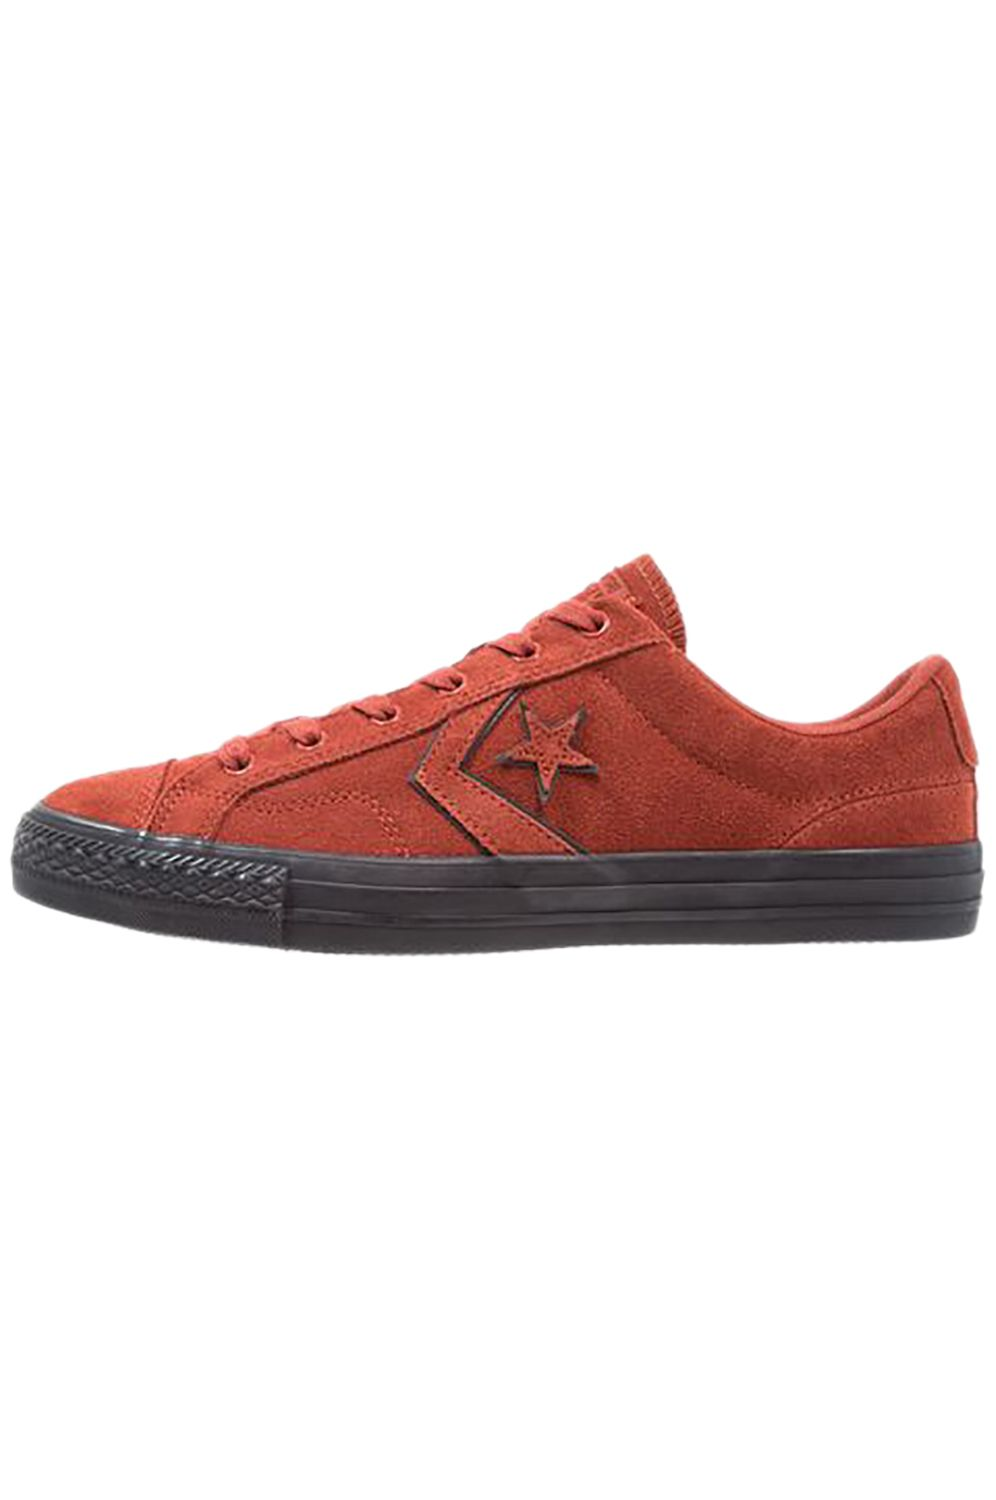 Tenis Converse STAR PLAYER Mars Stone/Black